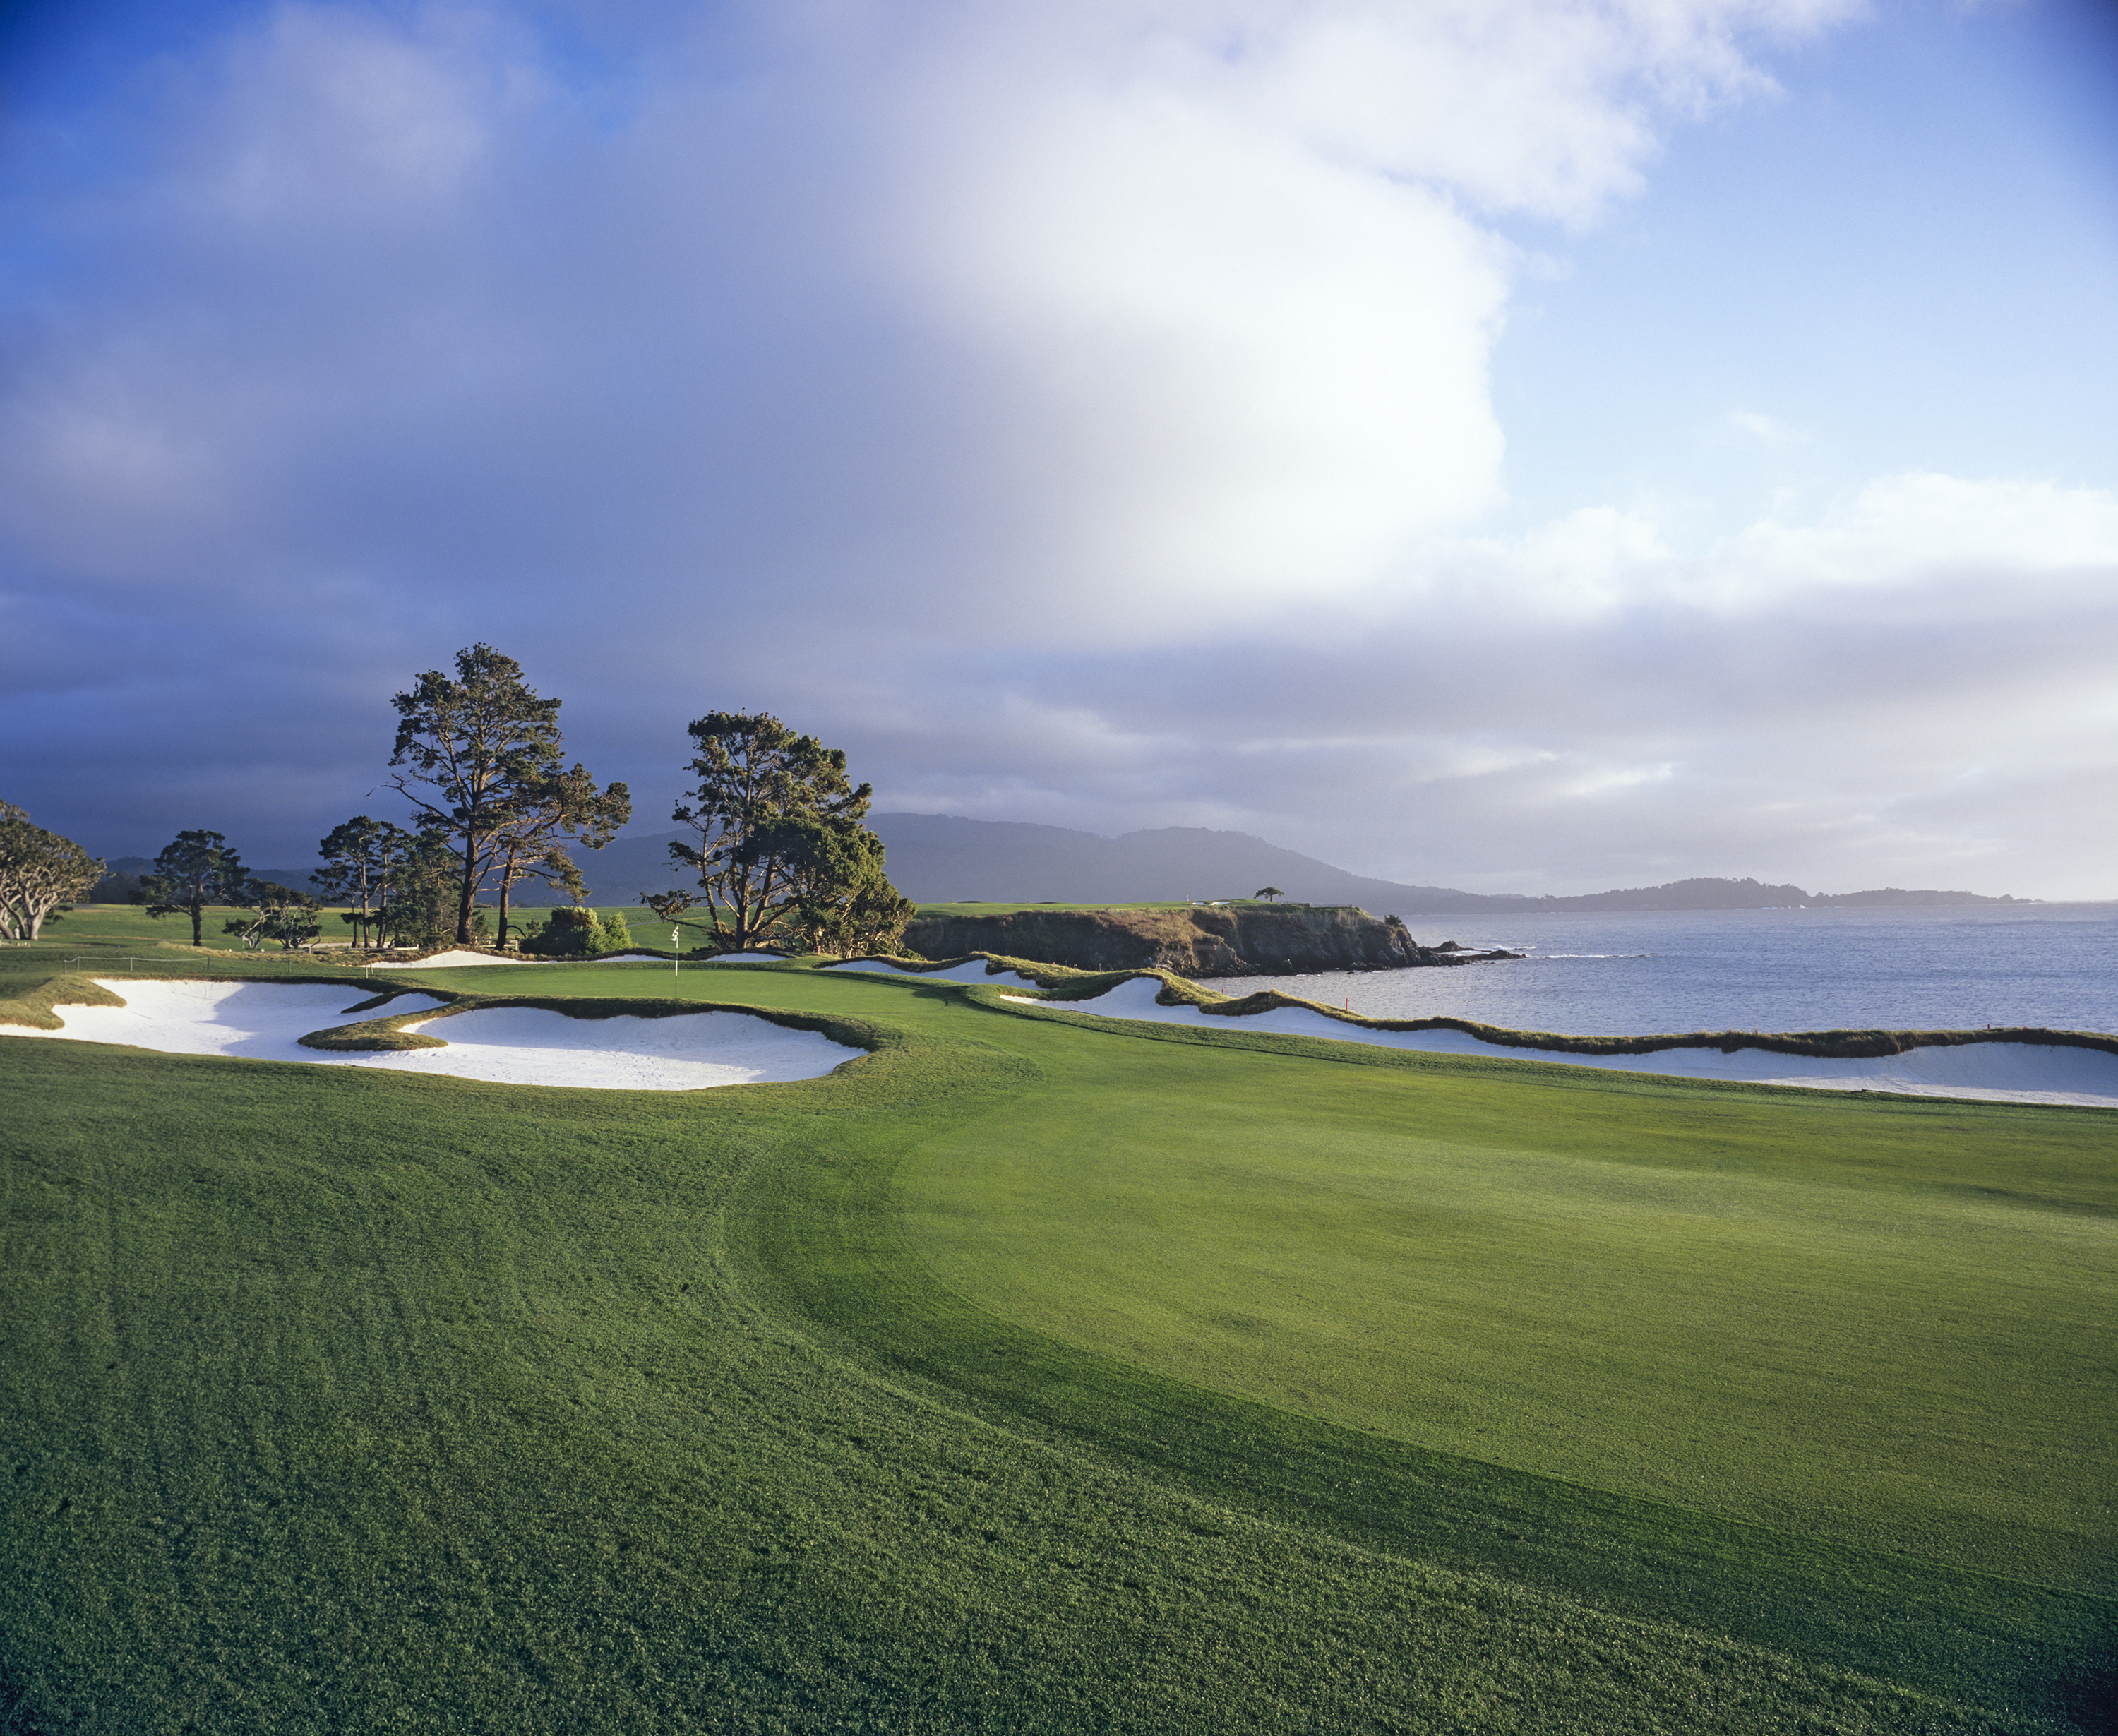 4th hole at Pebble Beach